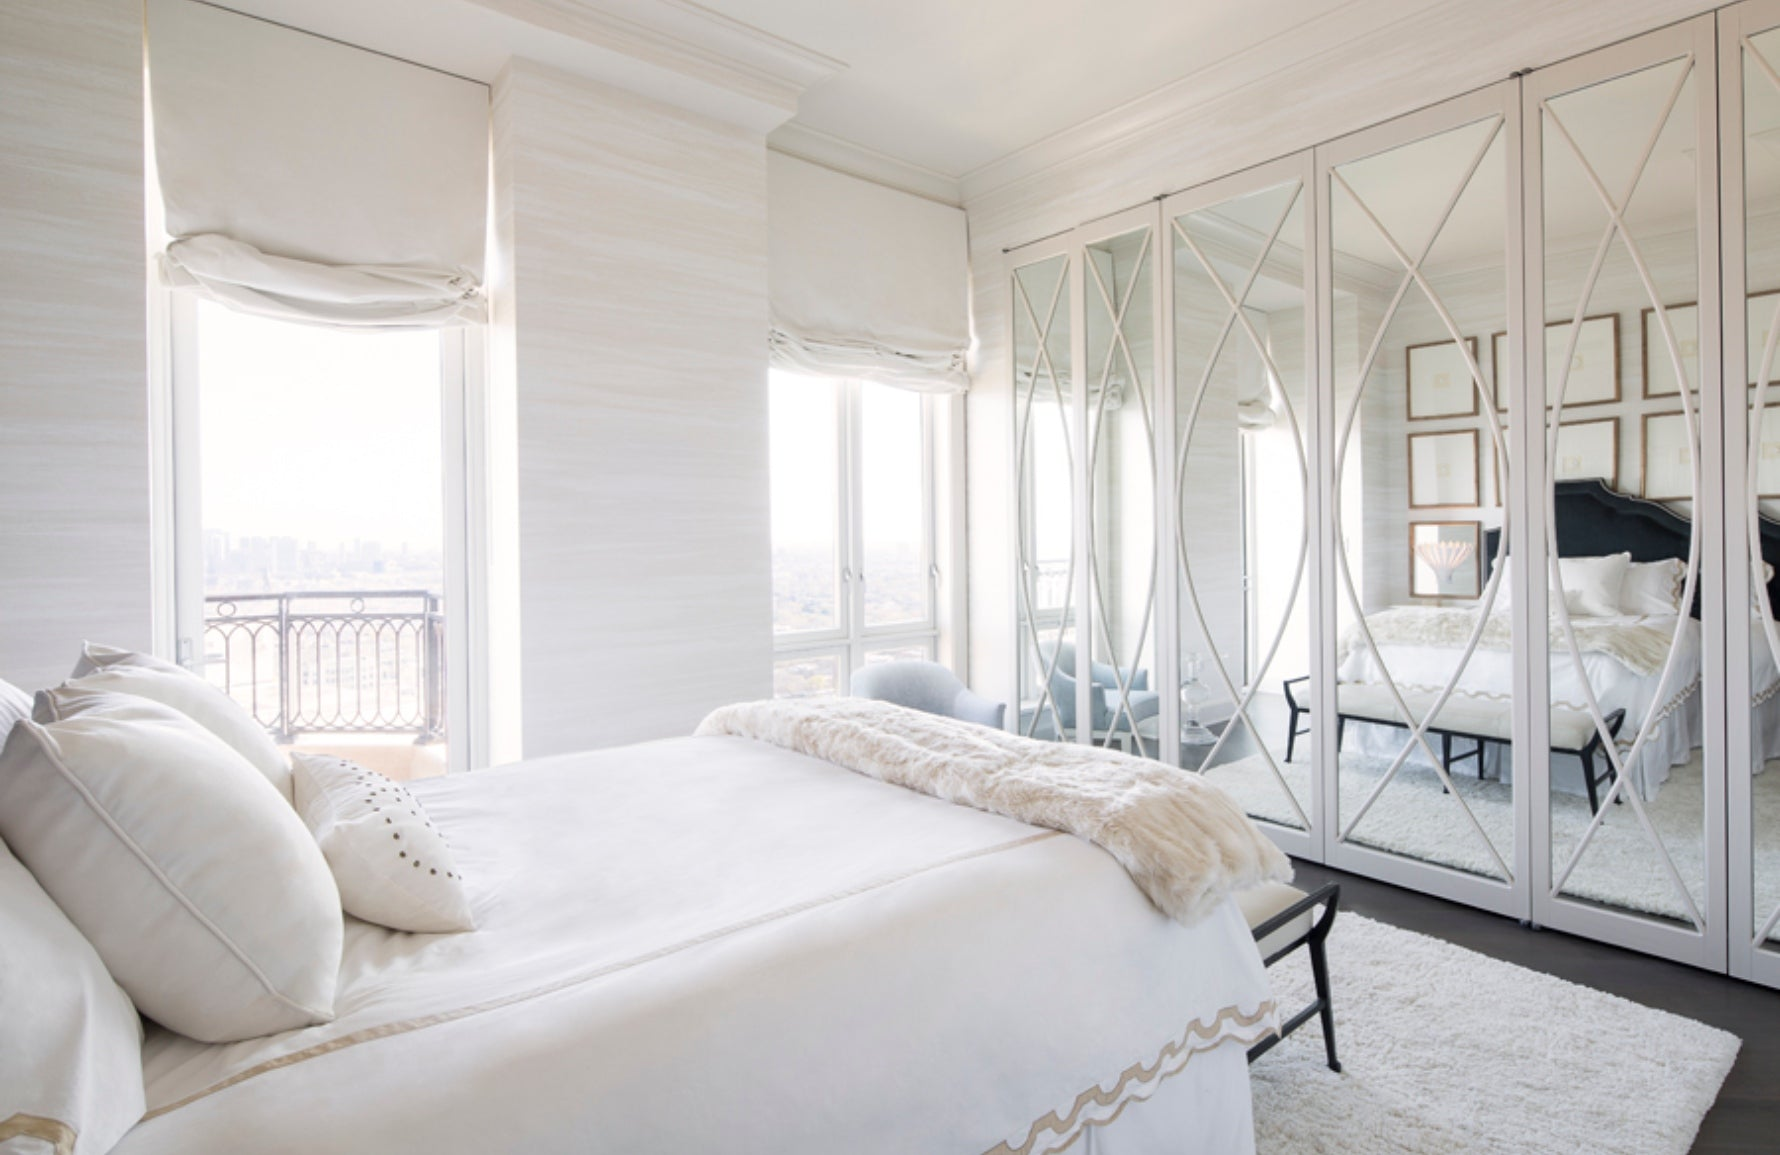 9 Ways to Decorate & Fill Empty Bedroom Corners - Awkward Bedroom Corners - Anthony Michael Interior Design - LuxDeco.com Style Guide